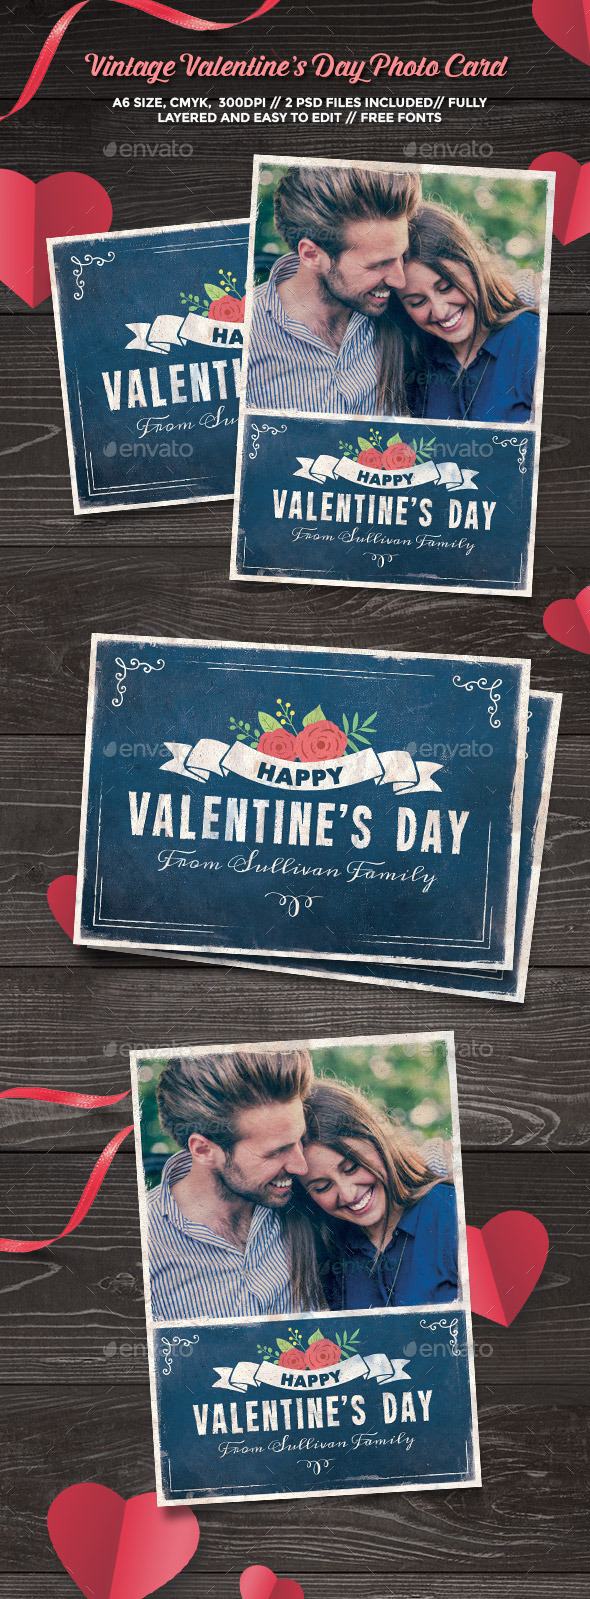 Vintage Valentine's Day Photo Card - Greeting Cards Cards & Invites